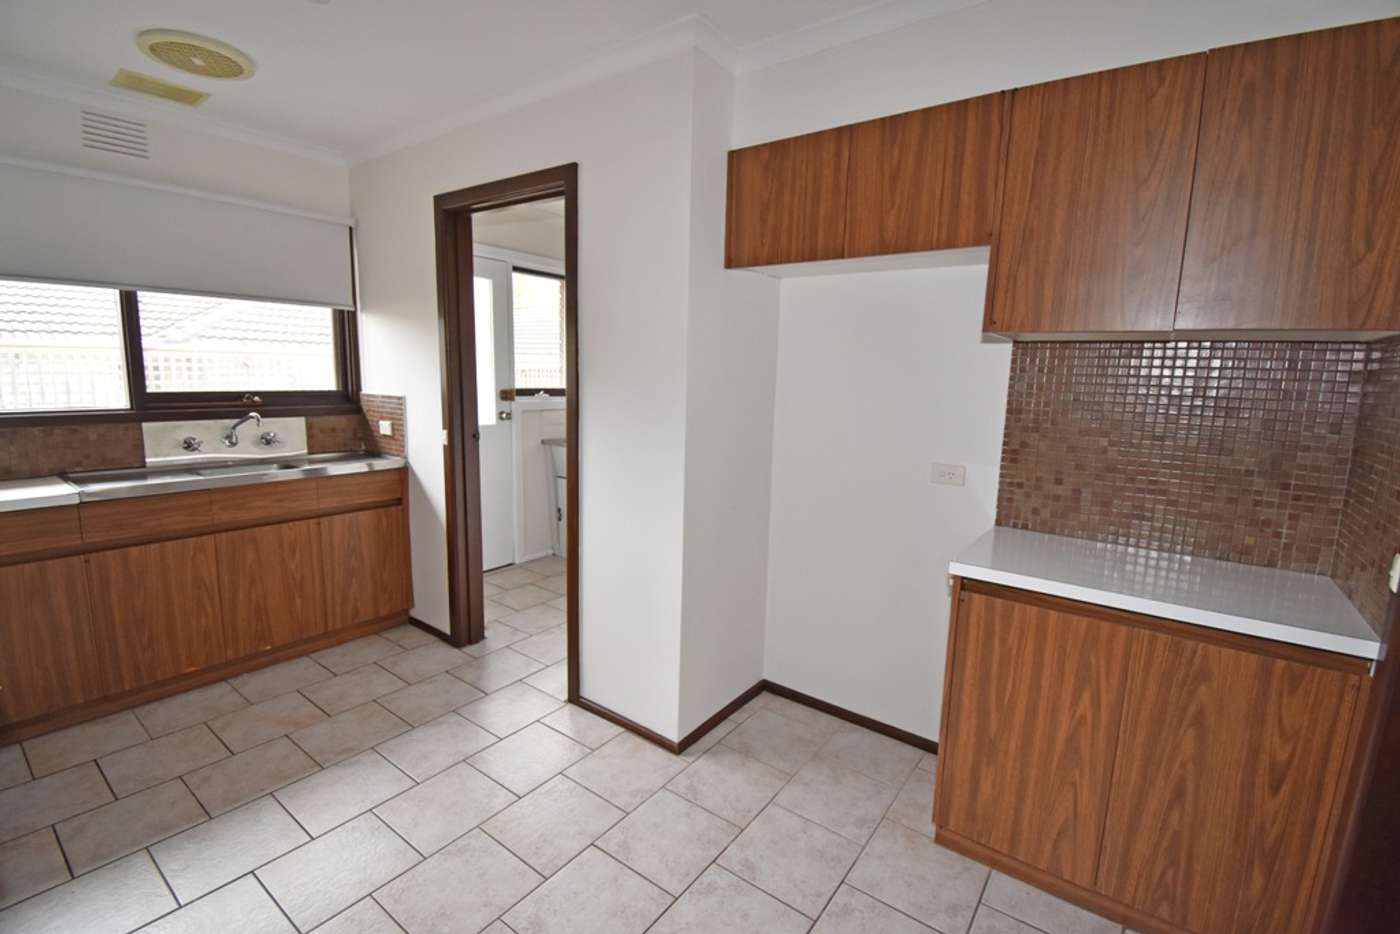 Sixth view of Homely unit listing, 3/47 East Boundary Road, Bentleigh East VIC 3165